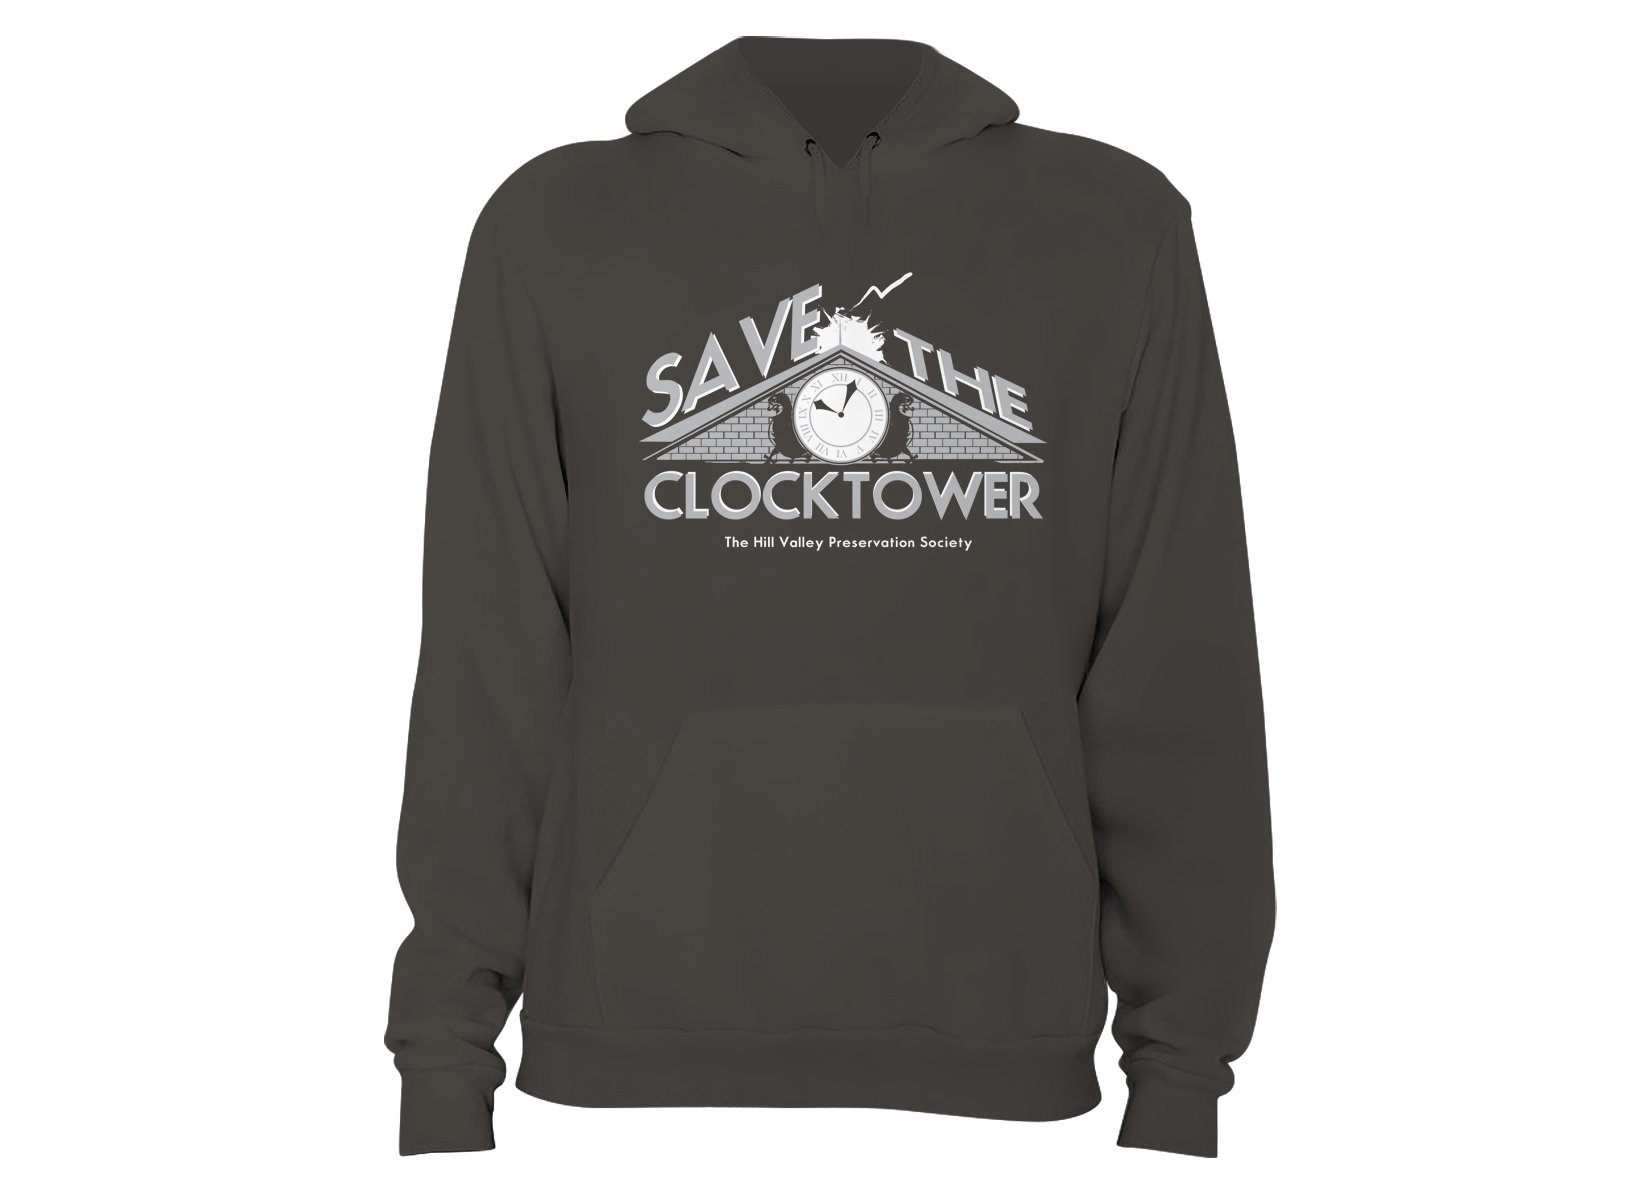 Save The Clocktower on Hoodie